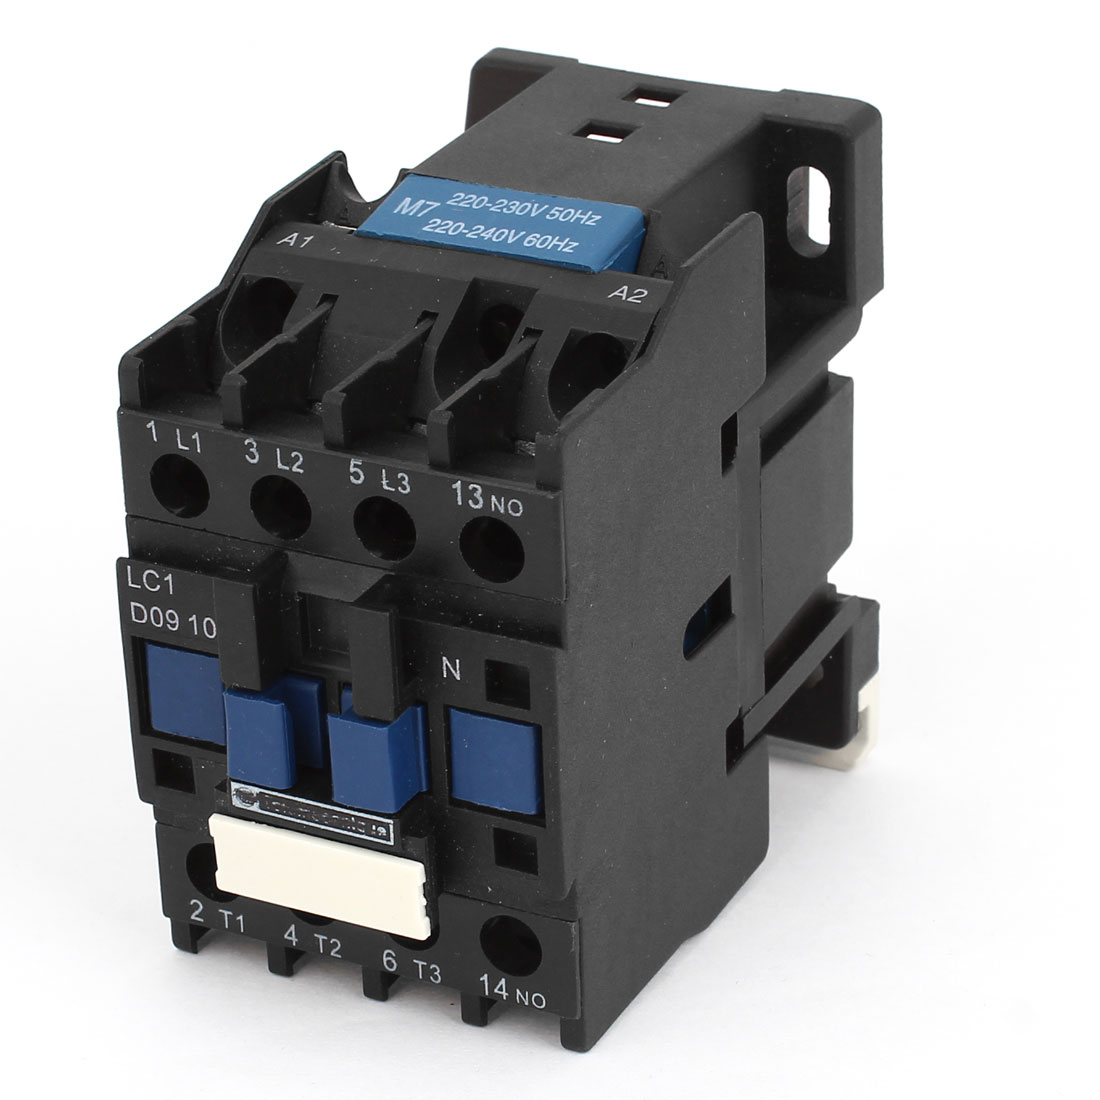 LC1 D0910 35mm DIN Rail Mounting 3-Phase Electric Power AC Contactor